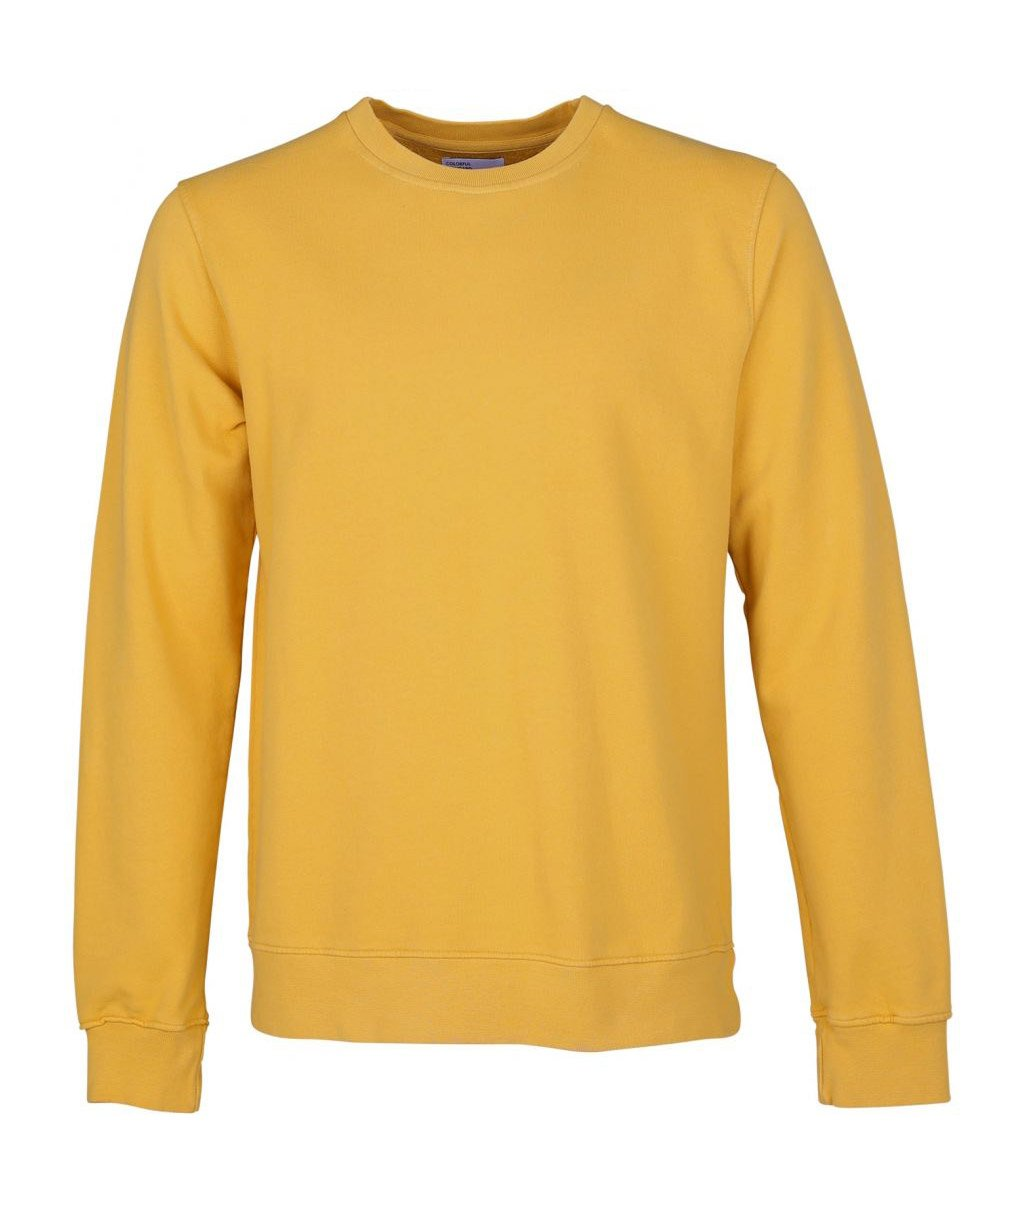 Colorful Standard COLORFUL STANDARD classic organic crew neck sweater burned yellow (unisex)